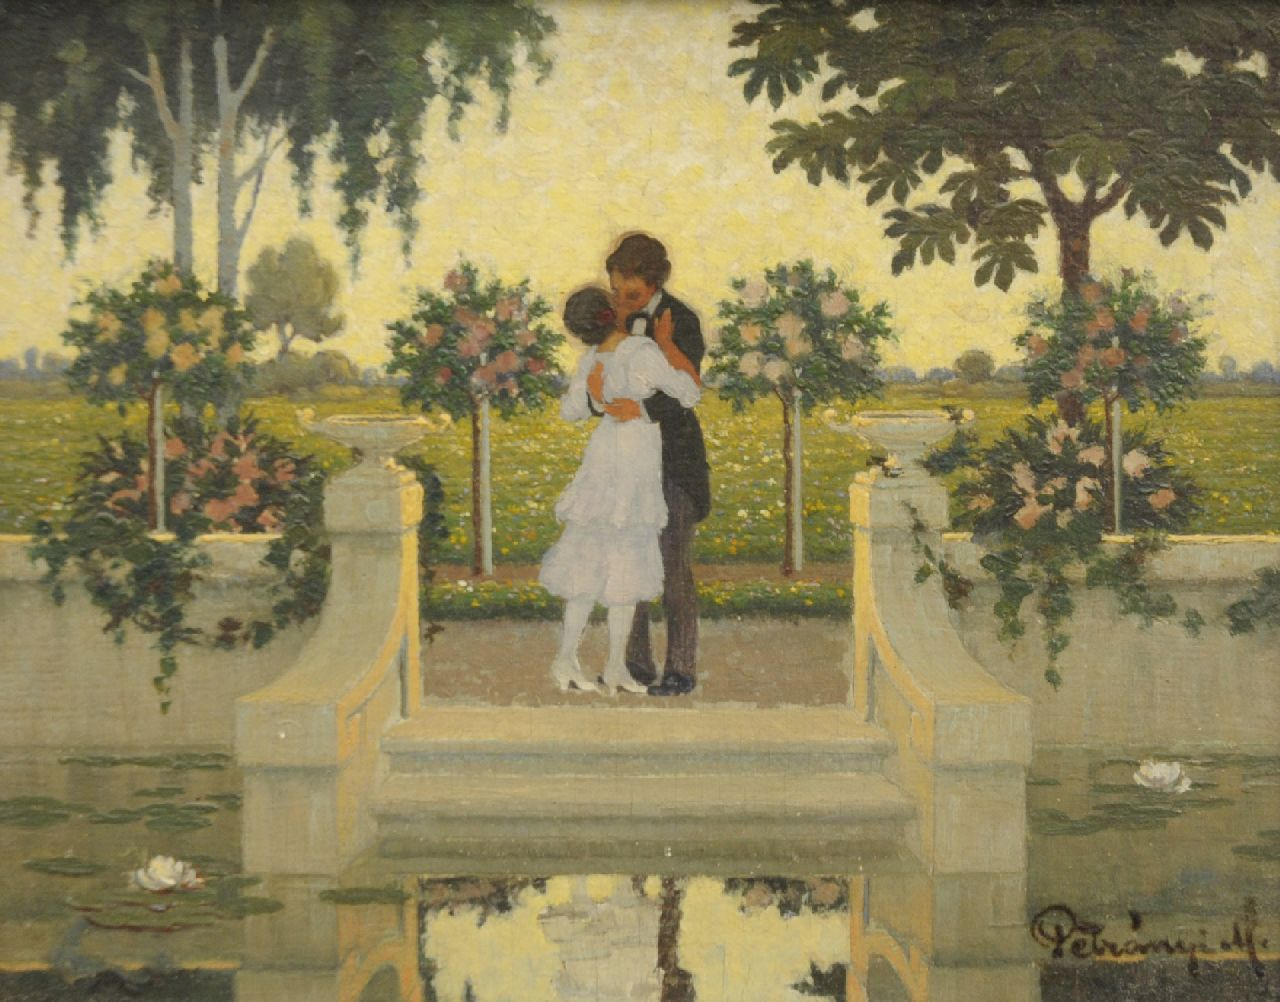 Nikolaus Petranyi | The French kiss, oil on panel, 18.0 x 23.0 cm, signed l.r. and dated 1917